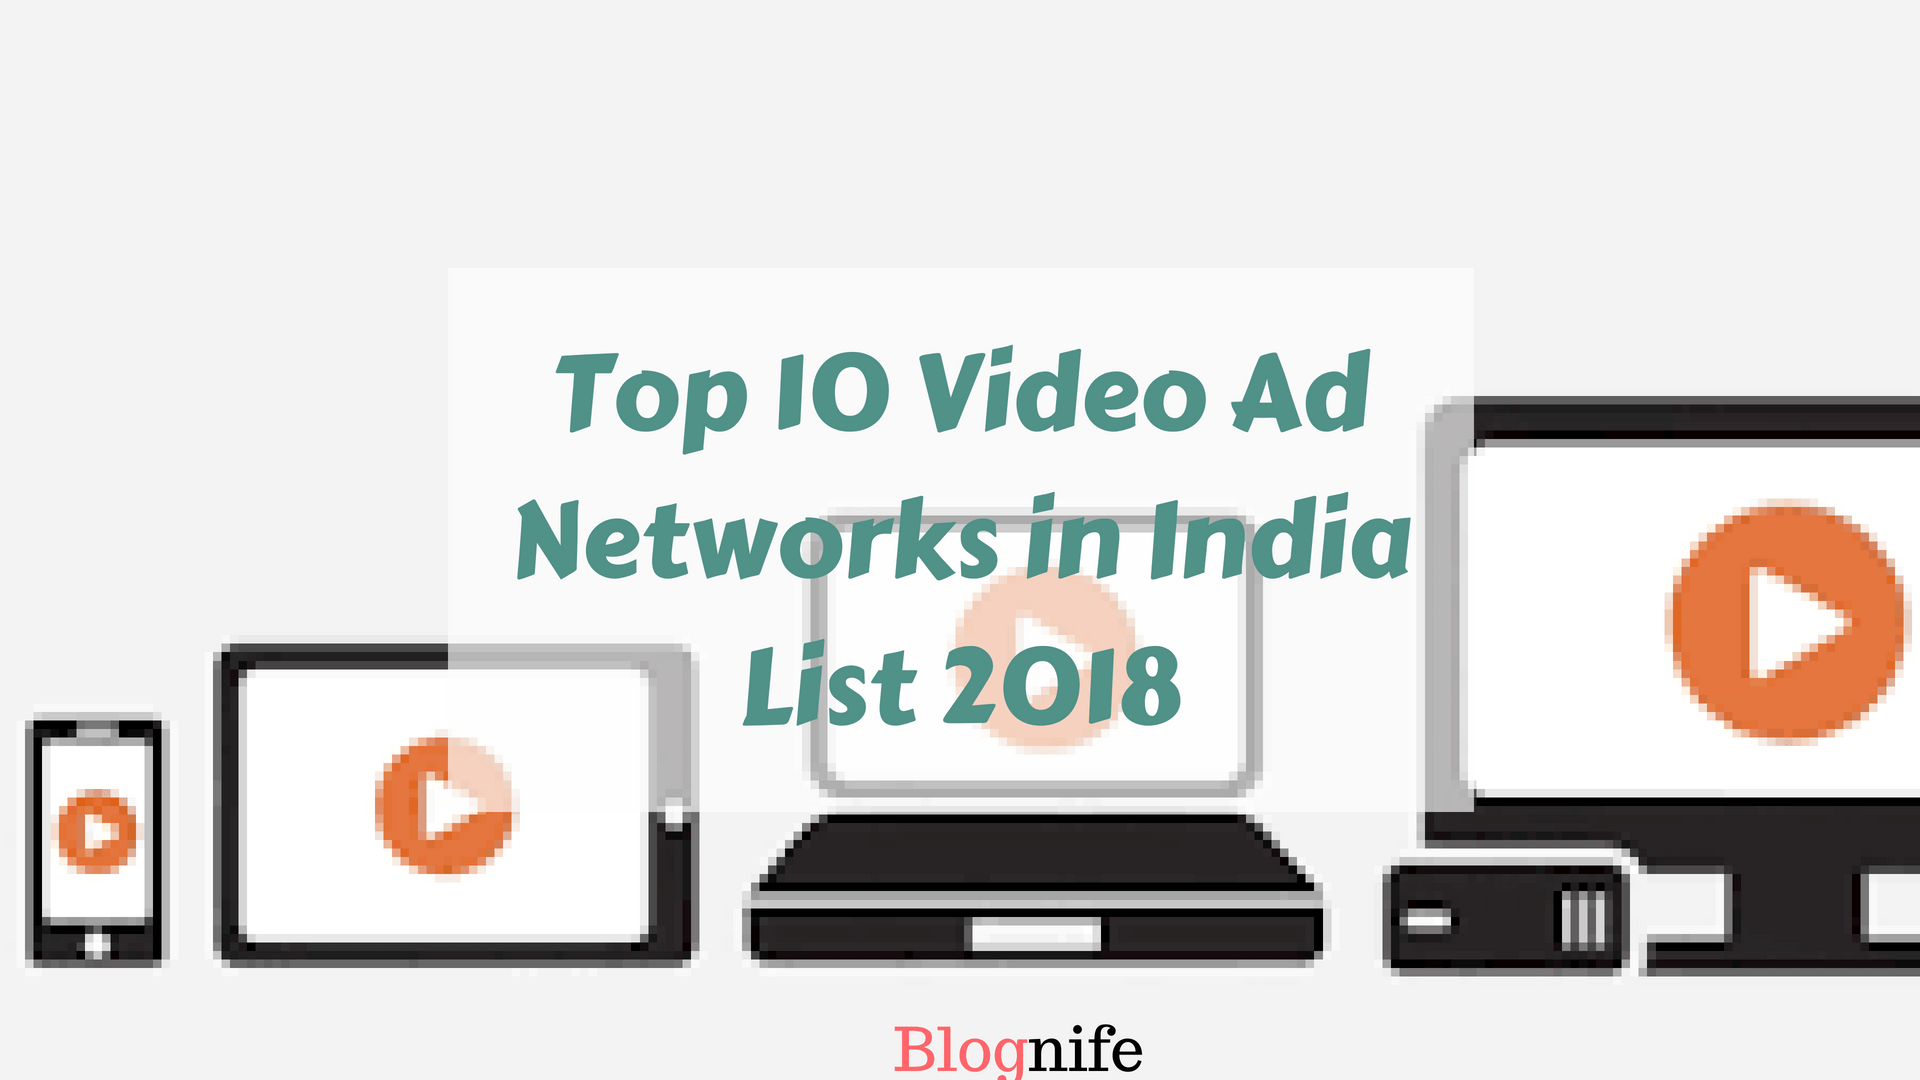 Top 10 Best Video Ad Networks List in India